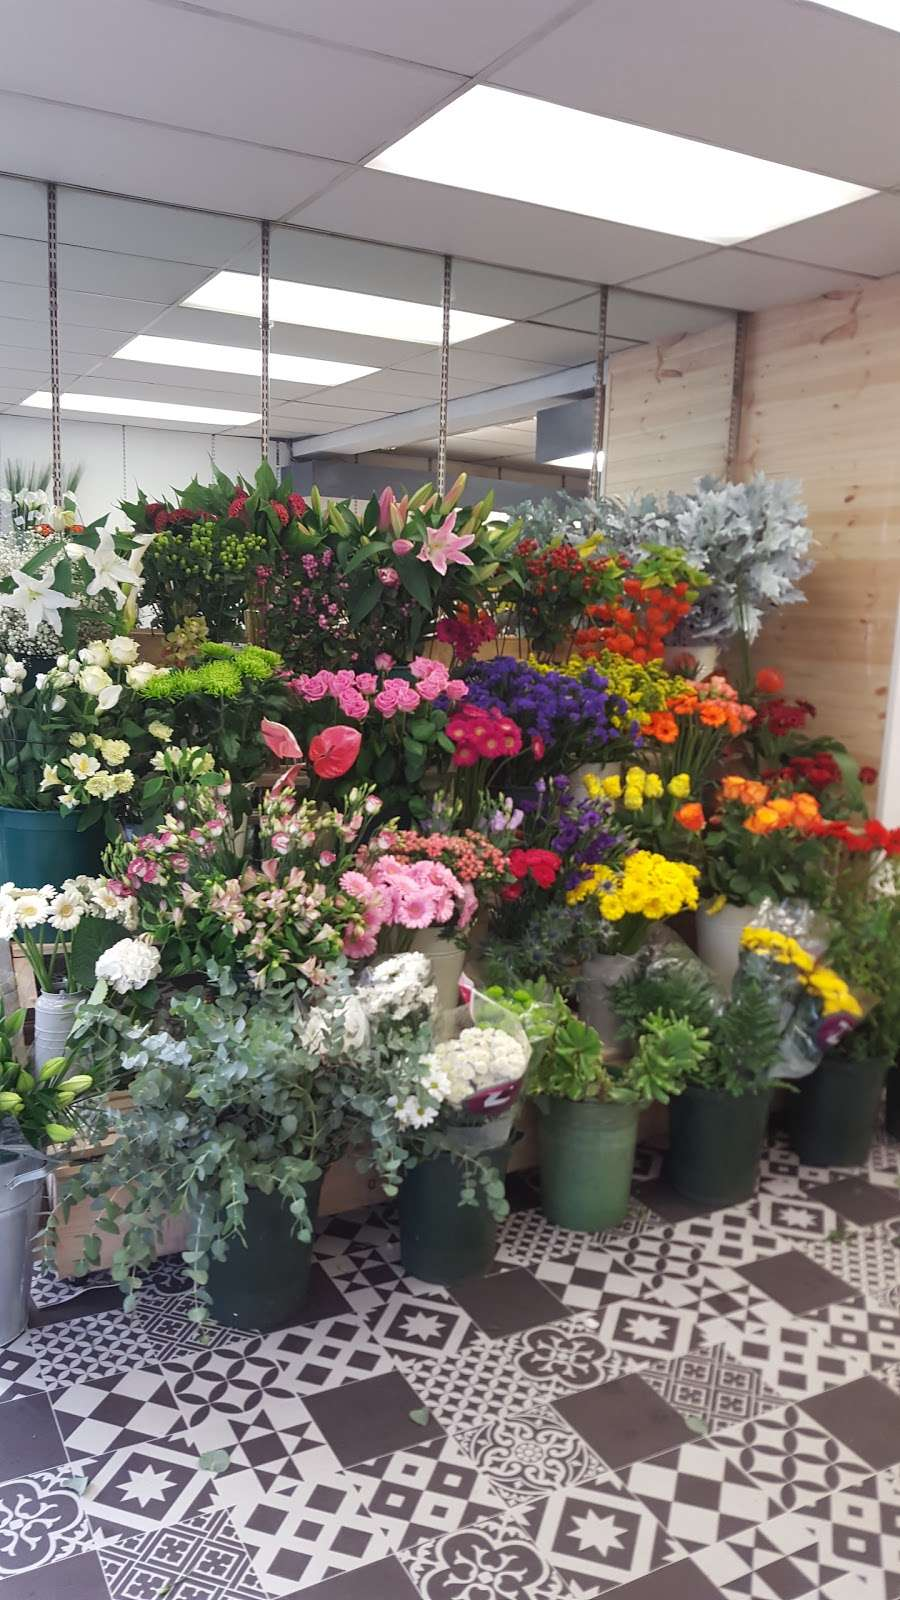 Coggers in Bloom - florist  | Photo 10 of 10 | Address: 849 Forest Rd, Walthamstow, London E17 4AT, UK | Phone: 020 8527 1051